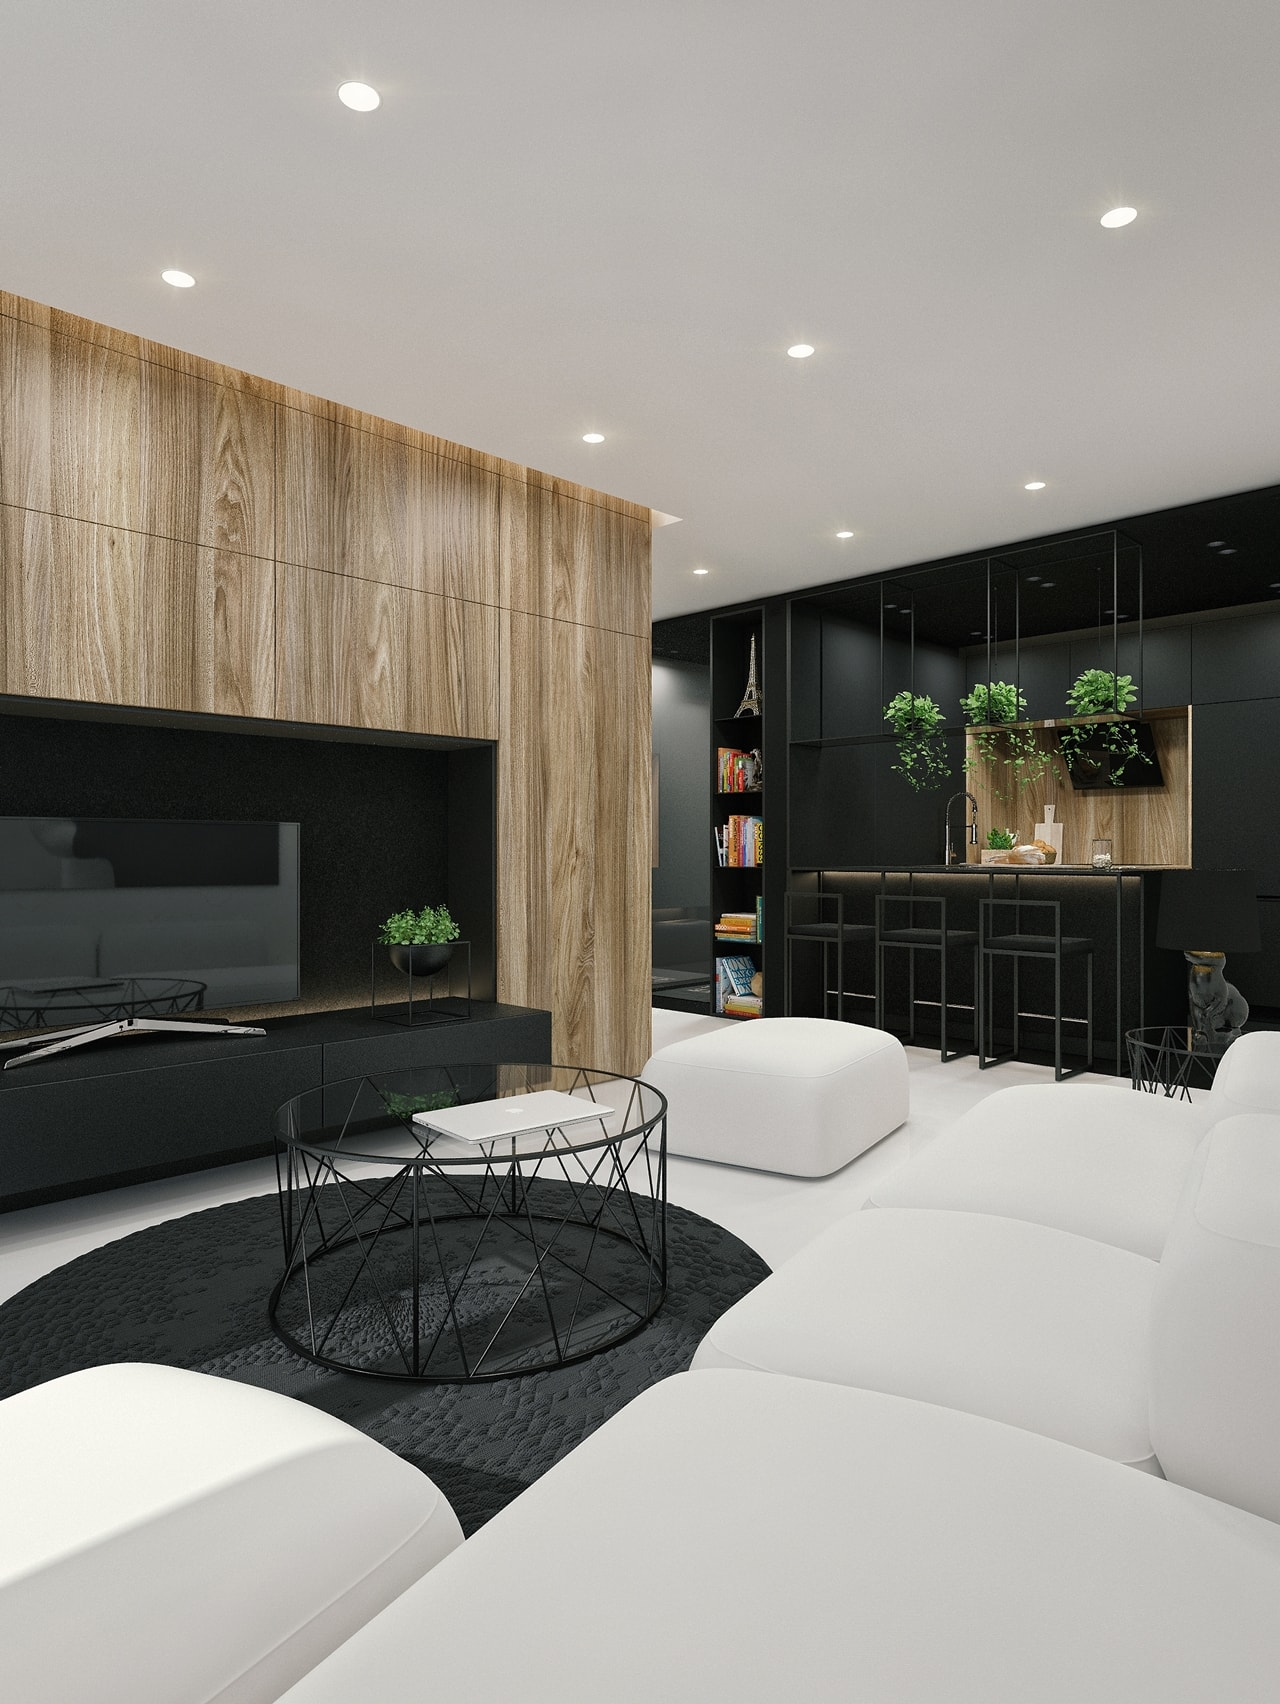 Black and white interior design ideas modern apartment by id white